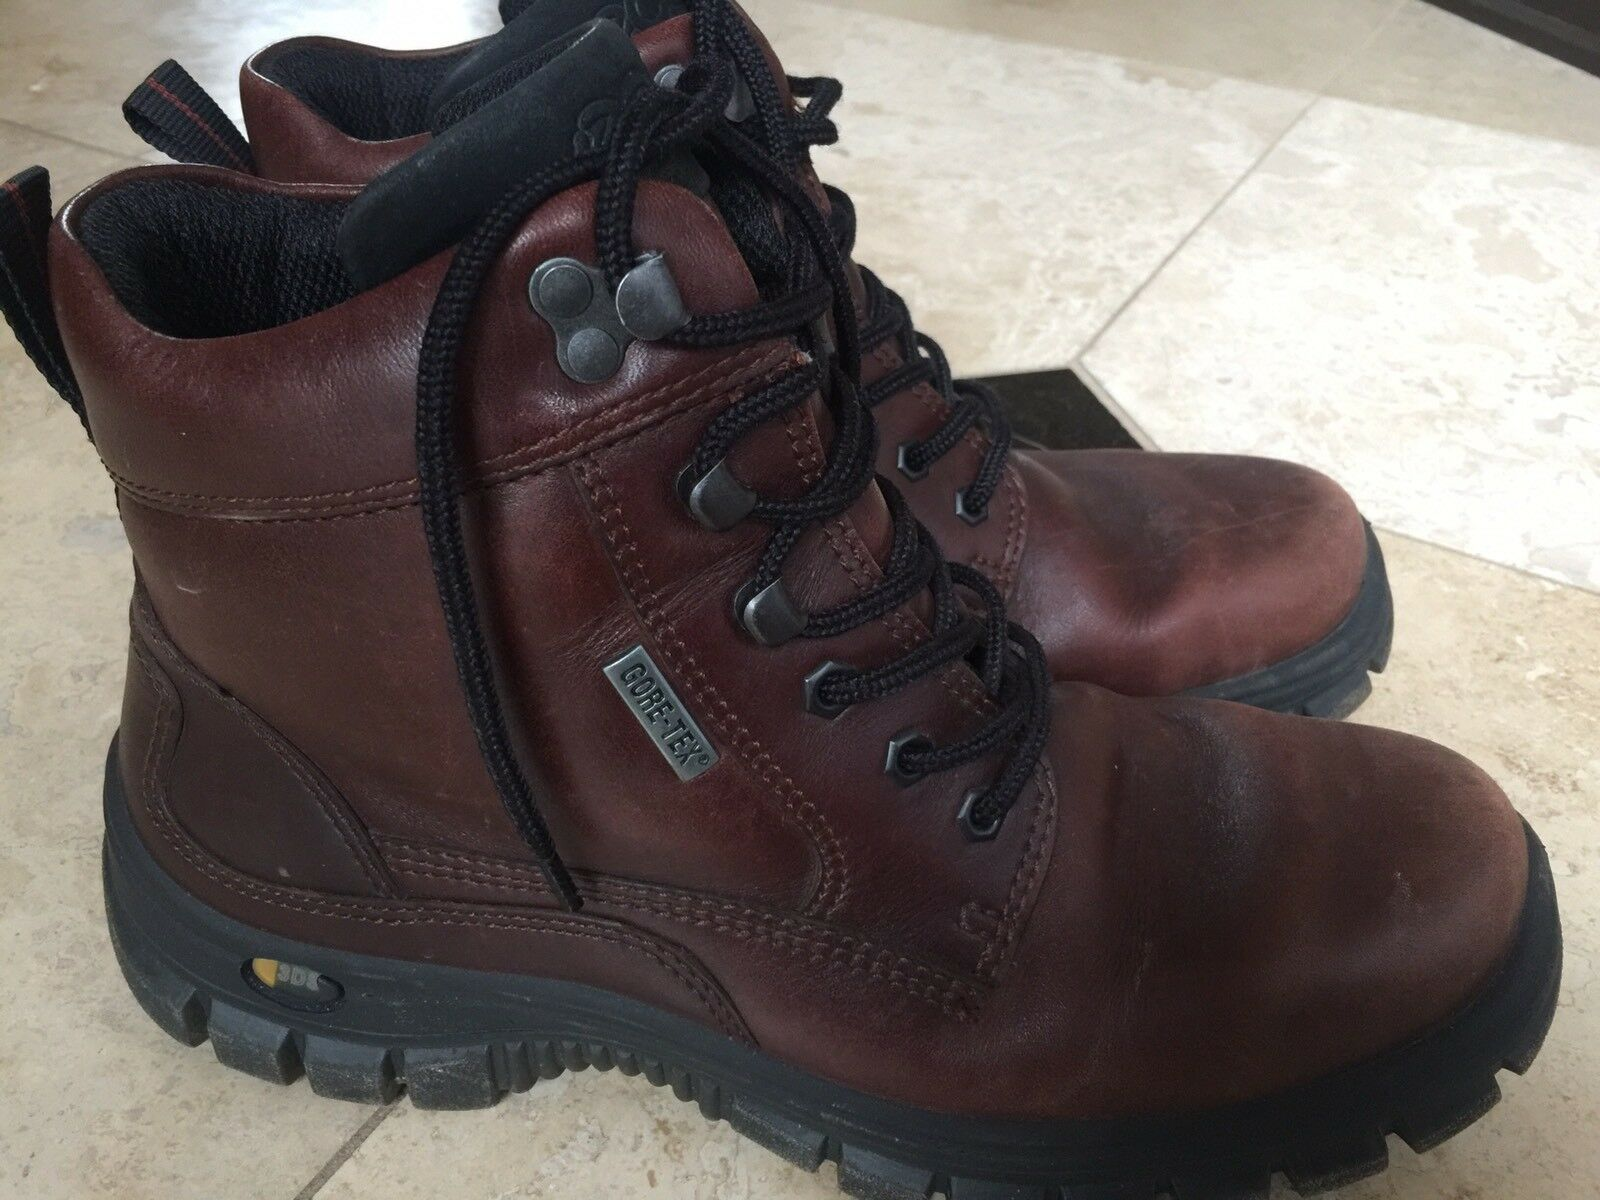 ECCO ECCO ECCO Women's Gora GTX Gore tex Hiking Boot Size 41 10 - 10.5 Brown 433660